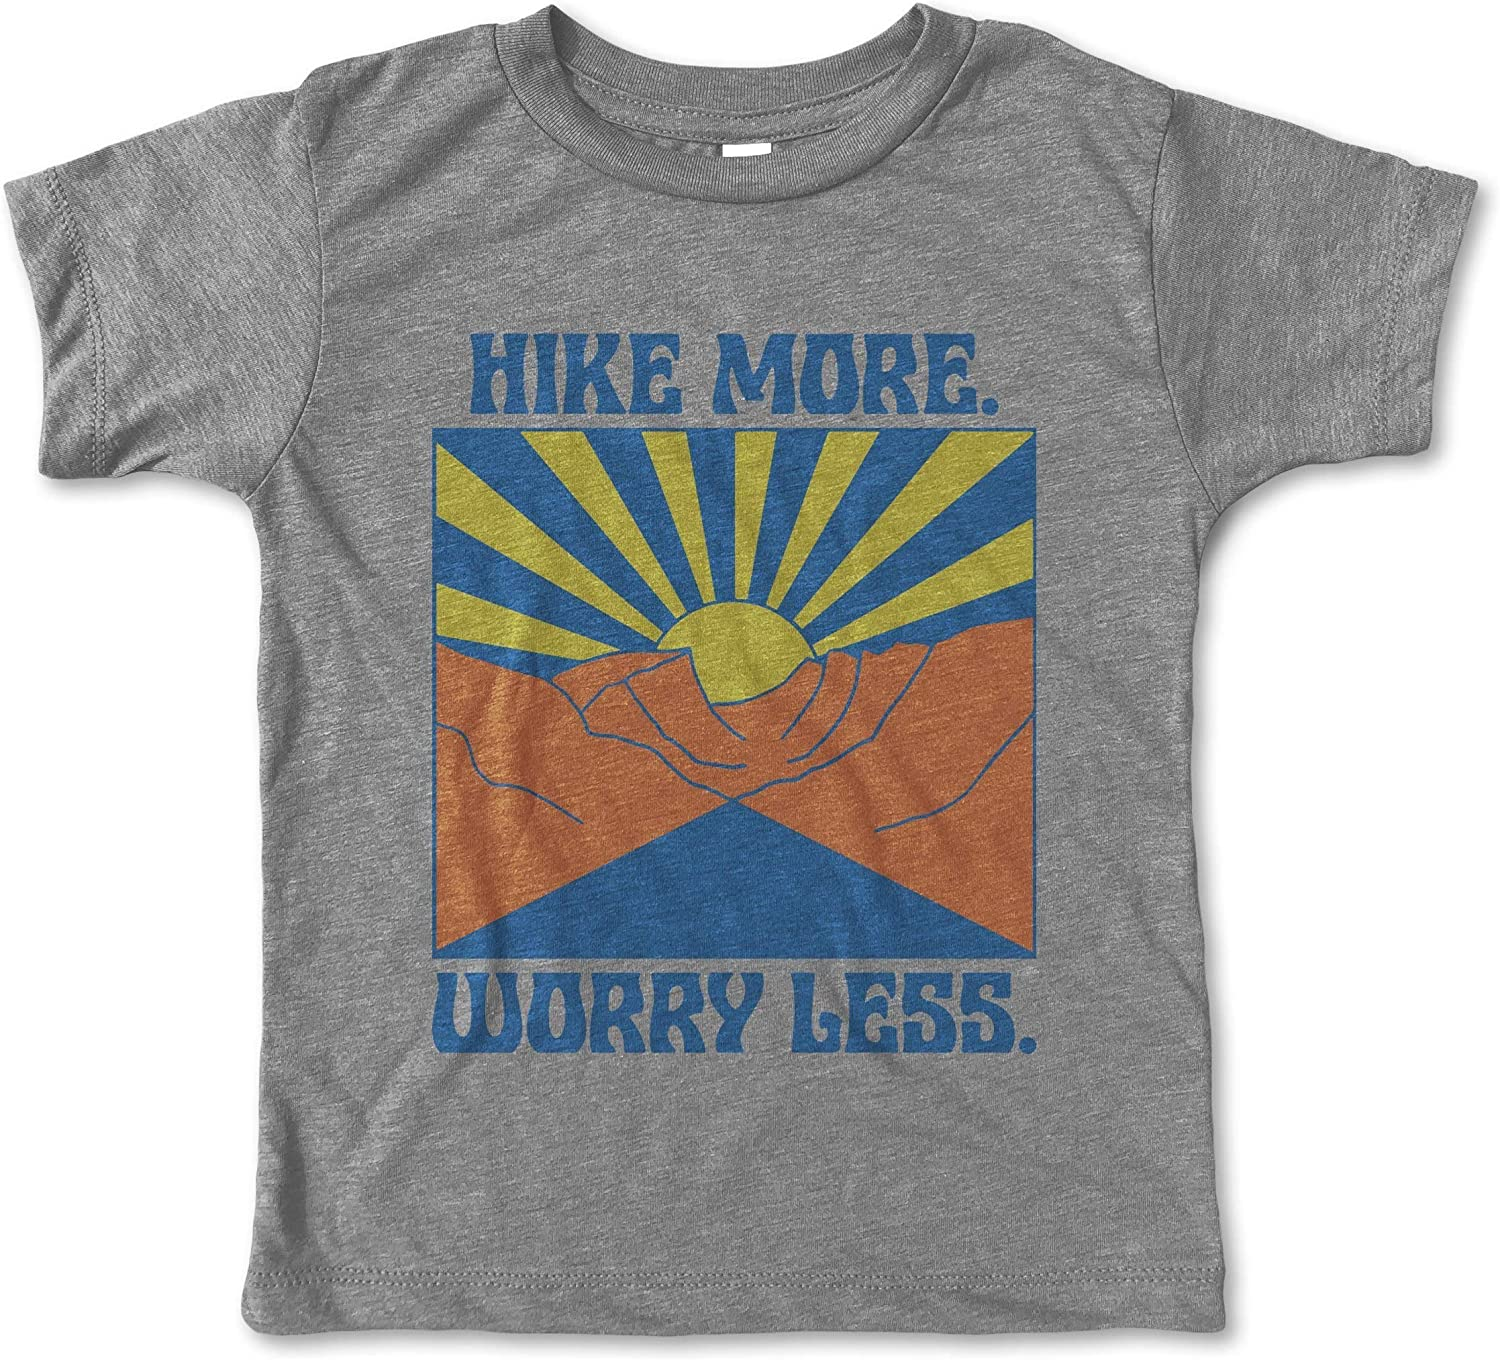 Rivet Apparel Co Kids and Toddler Boy Short Sleeve T-Shirt Hike More Worry Less Tee